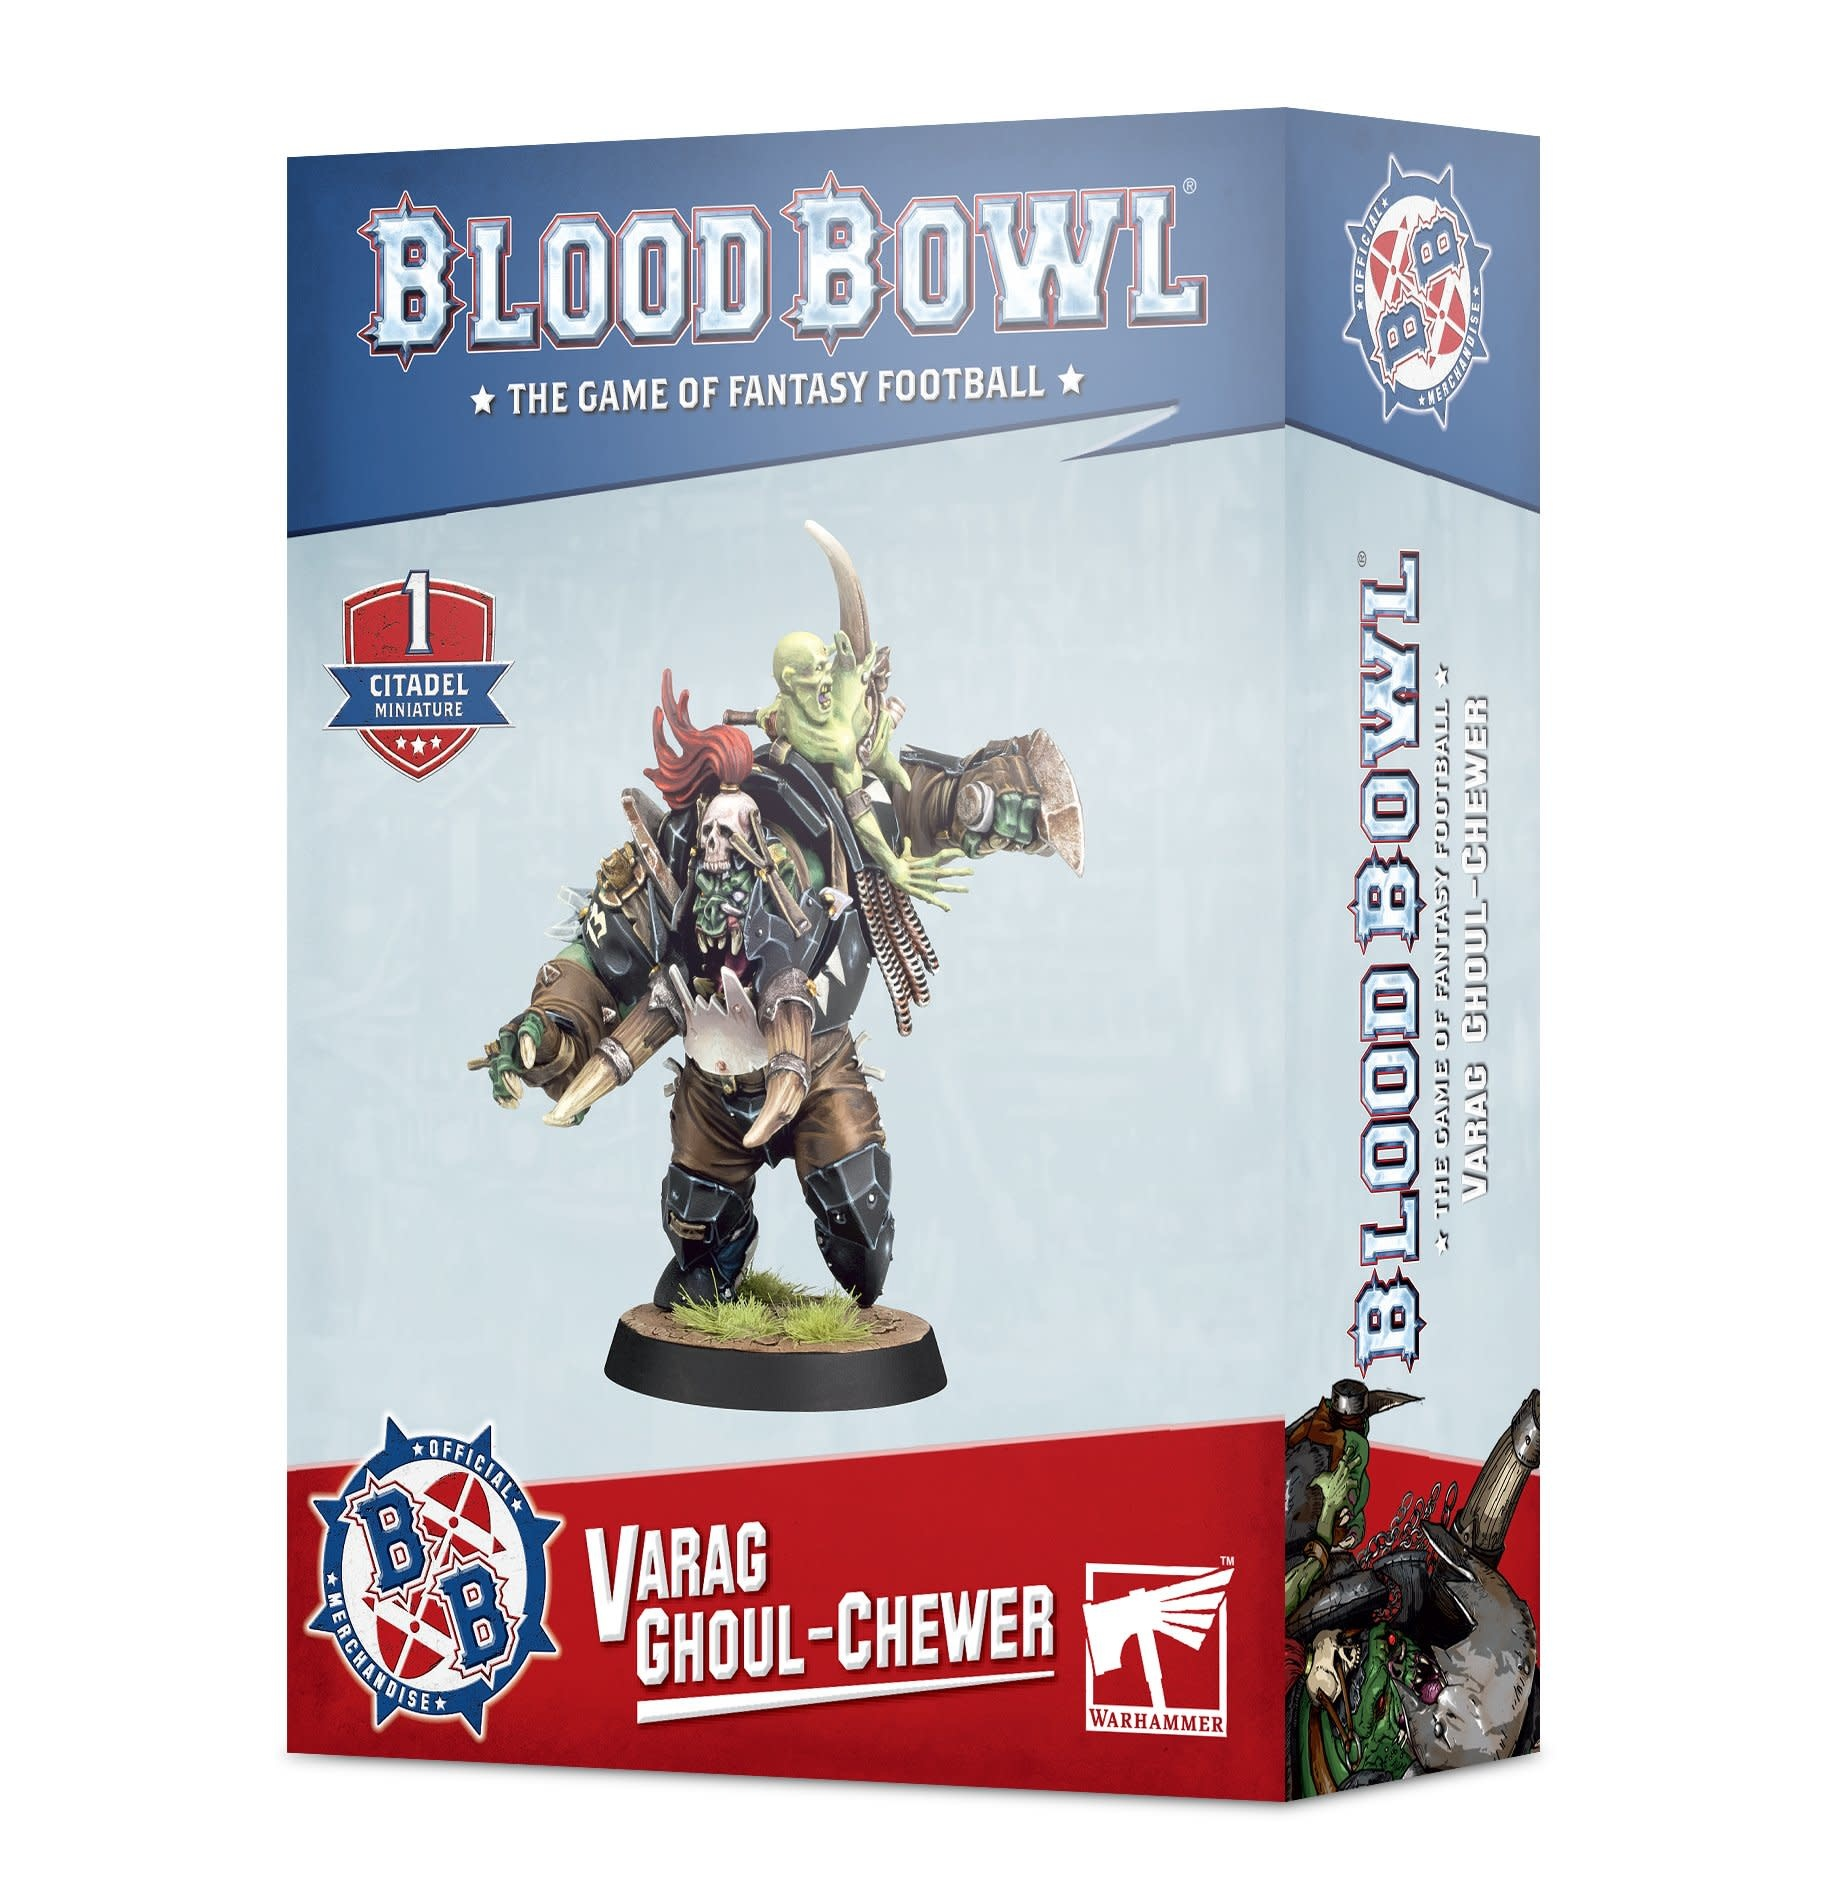 Blood Bowl: Varag Ghoul-Chewer